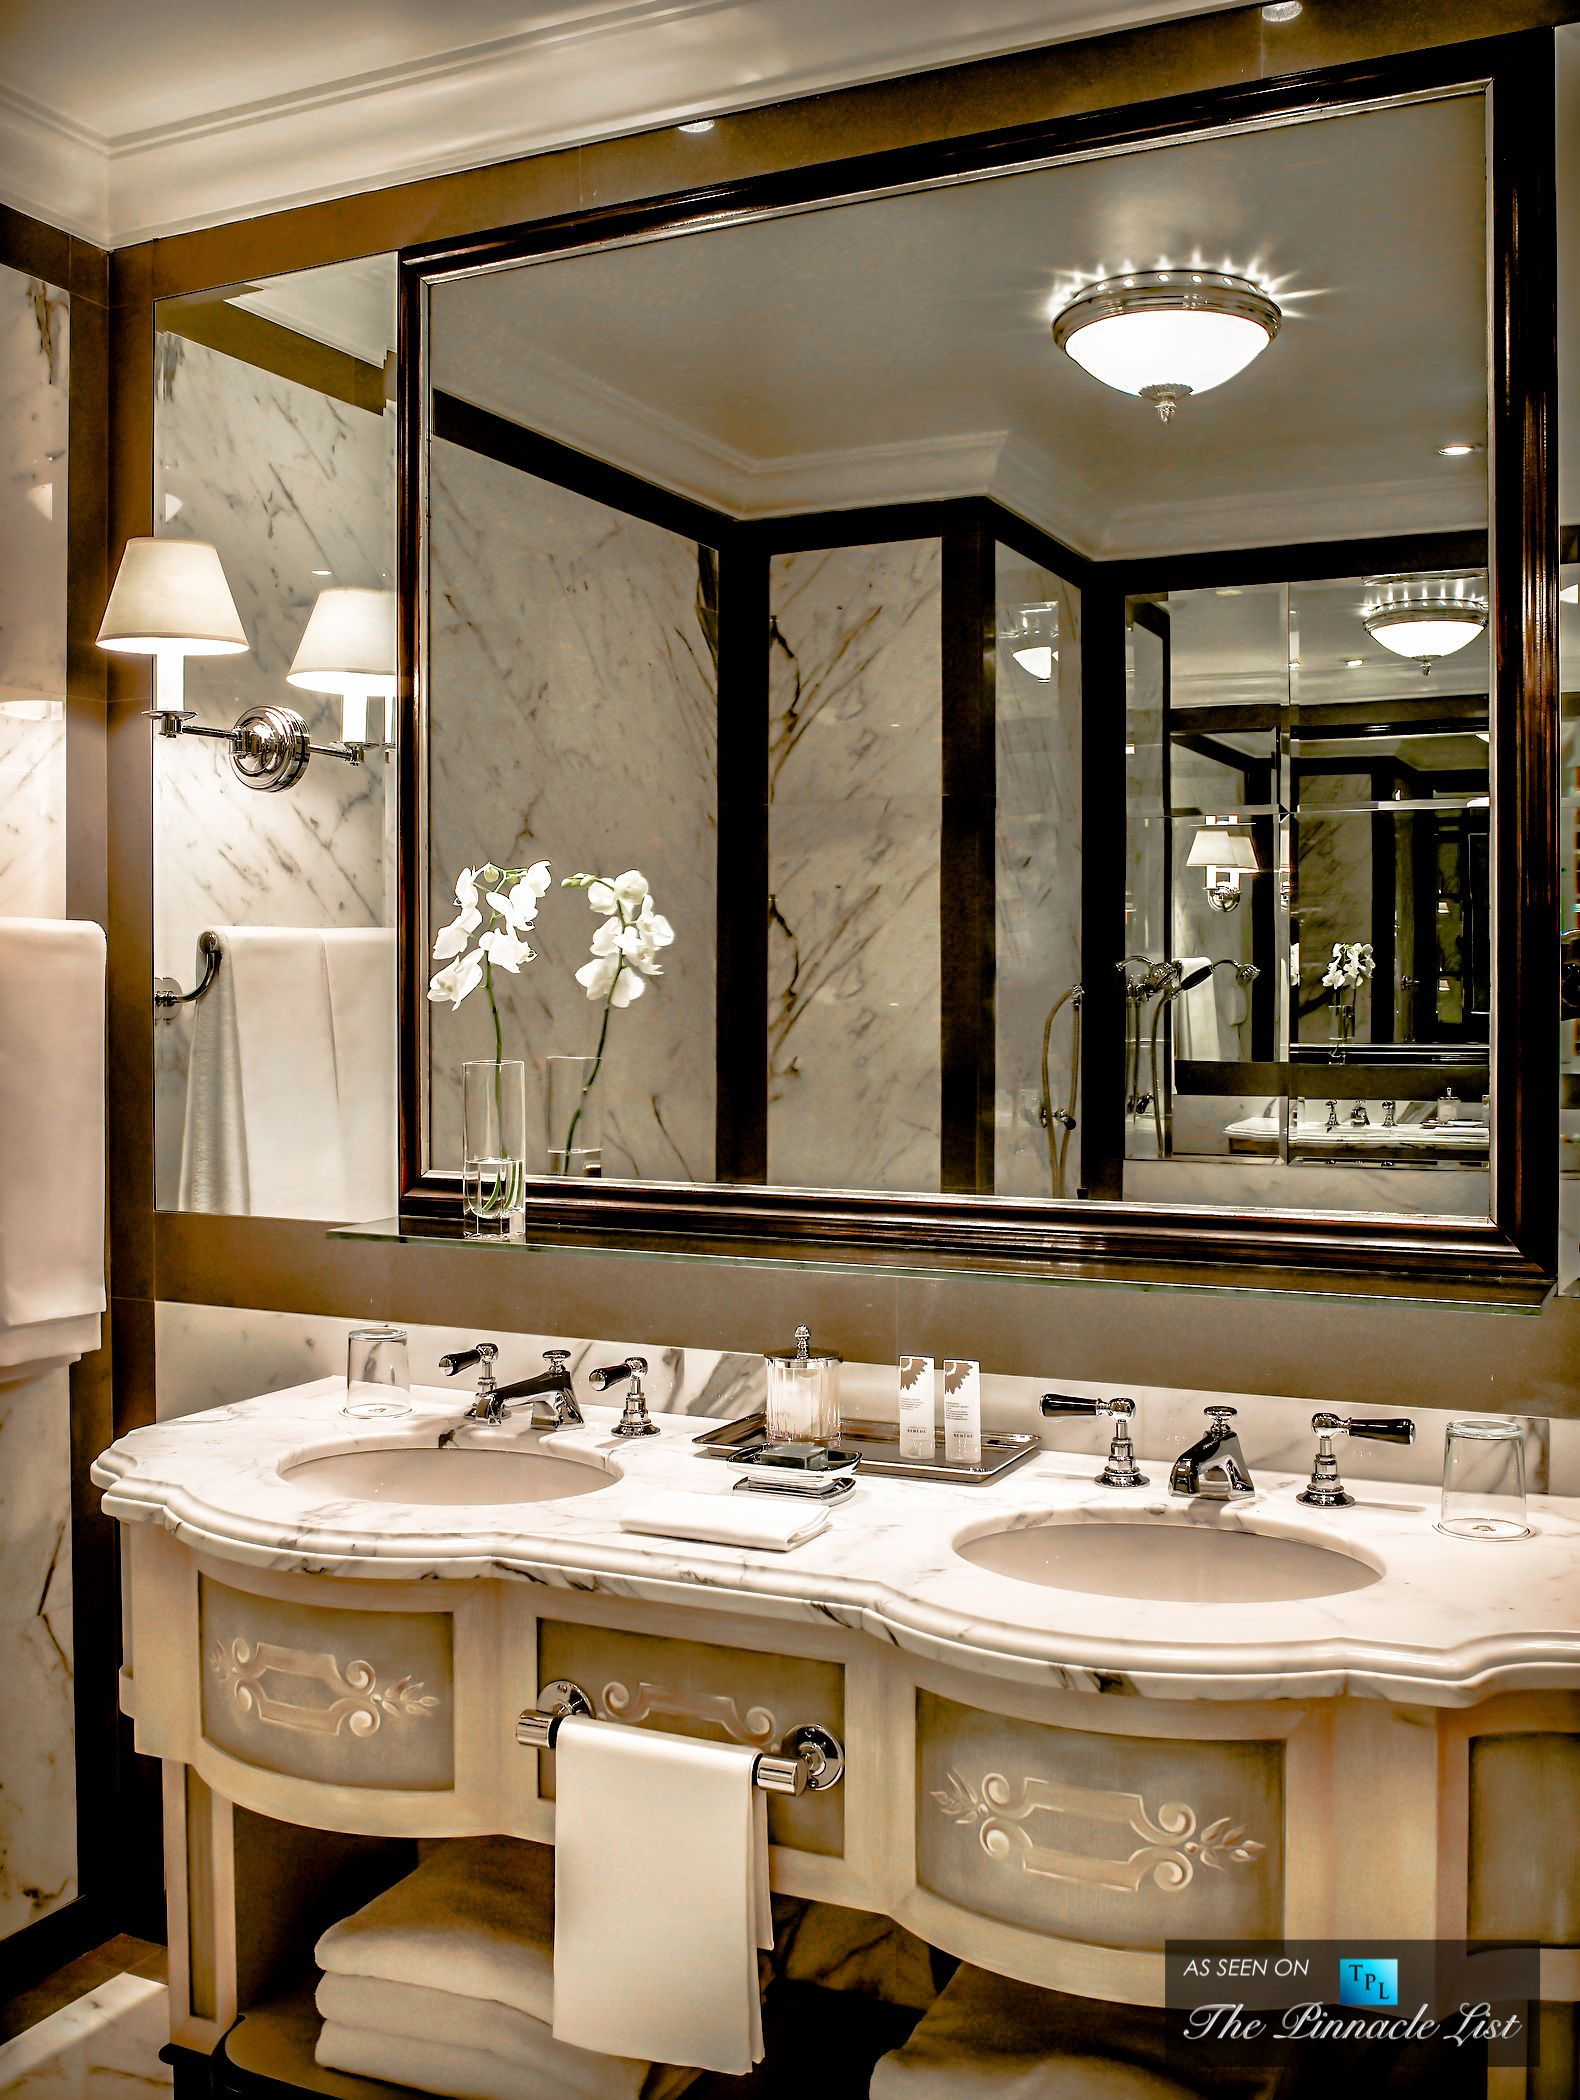 St Regis Luxury Hotel Florence Italy Bathroom With Tv